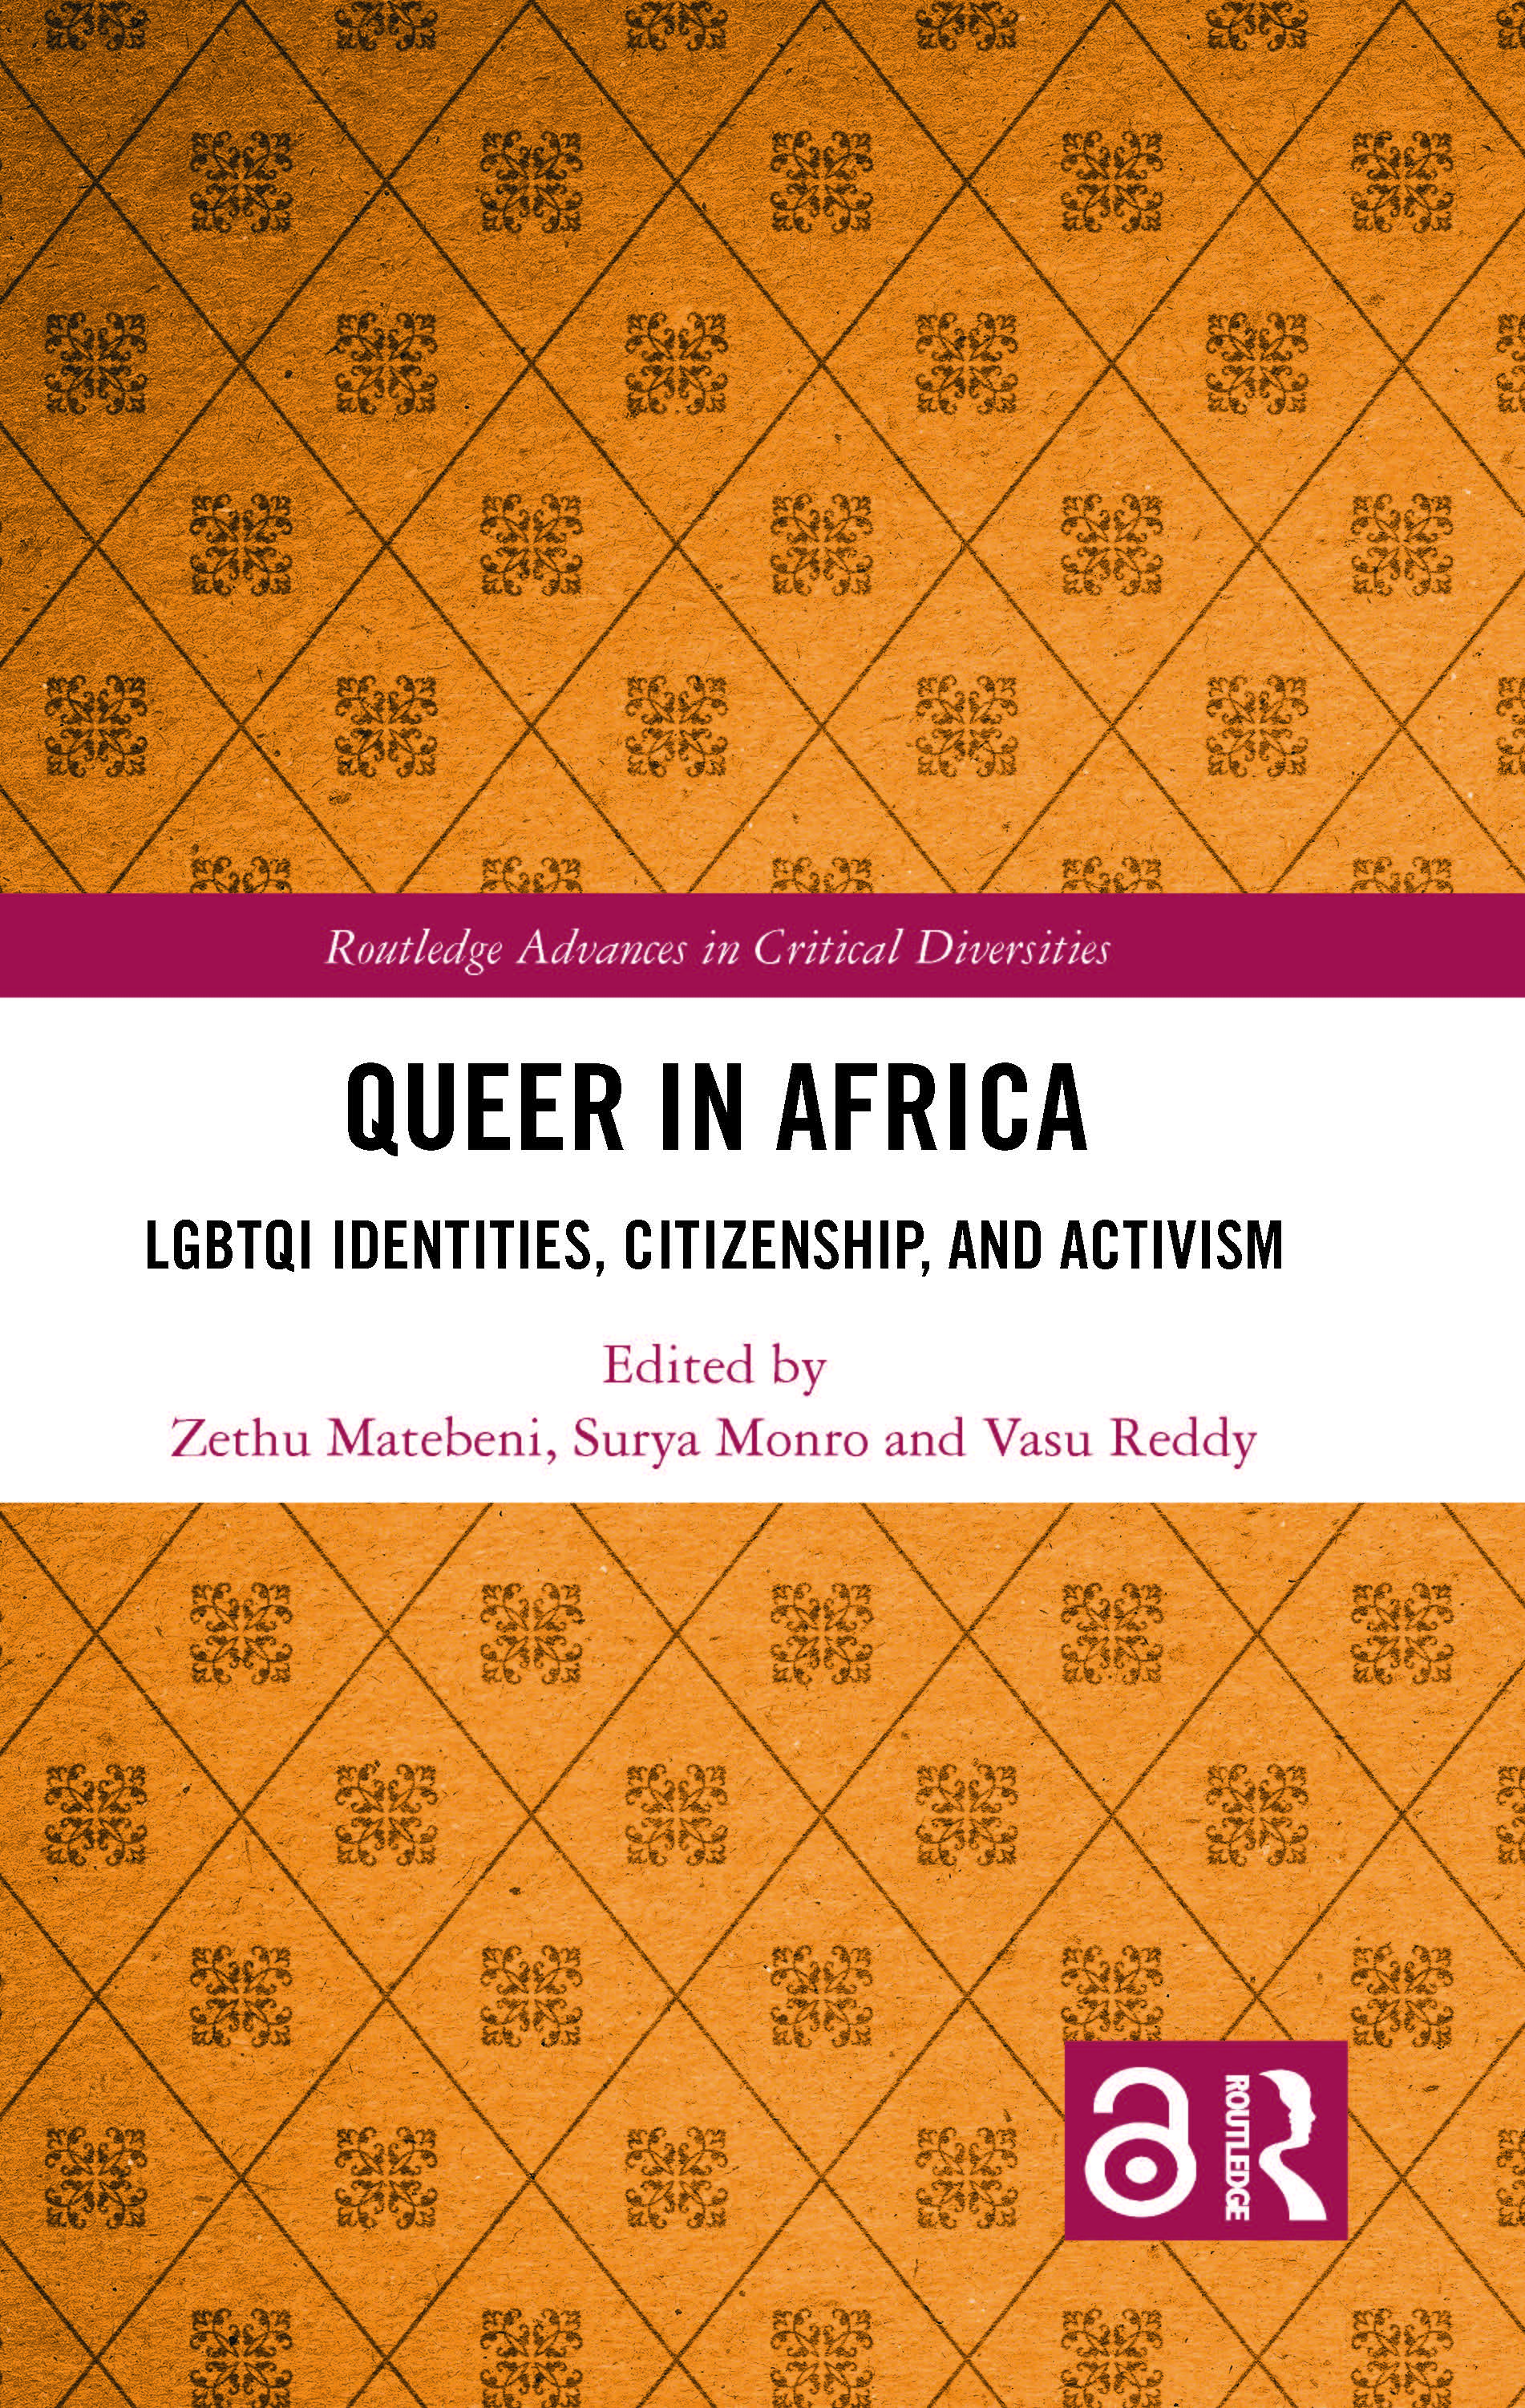 Queer in Africa: LGBTQI Identities, Citizenship, and Activism book cover